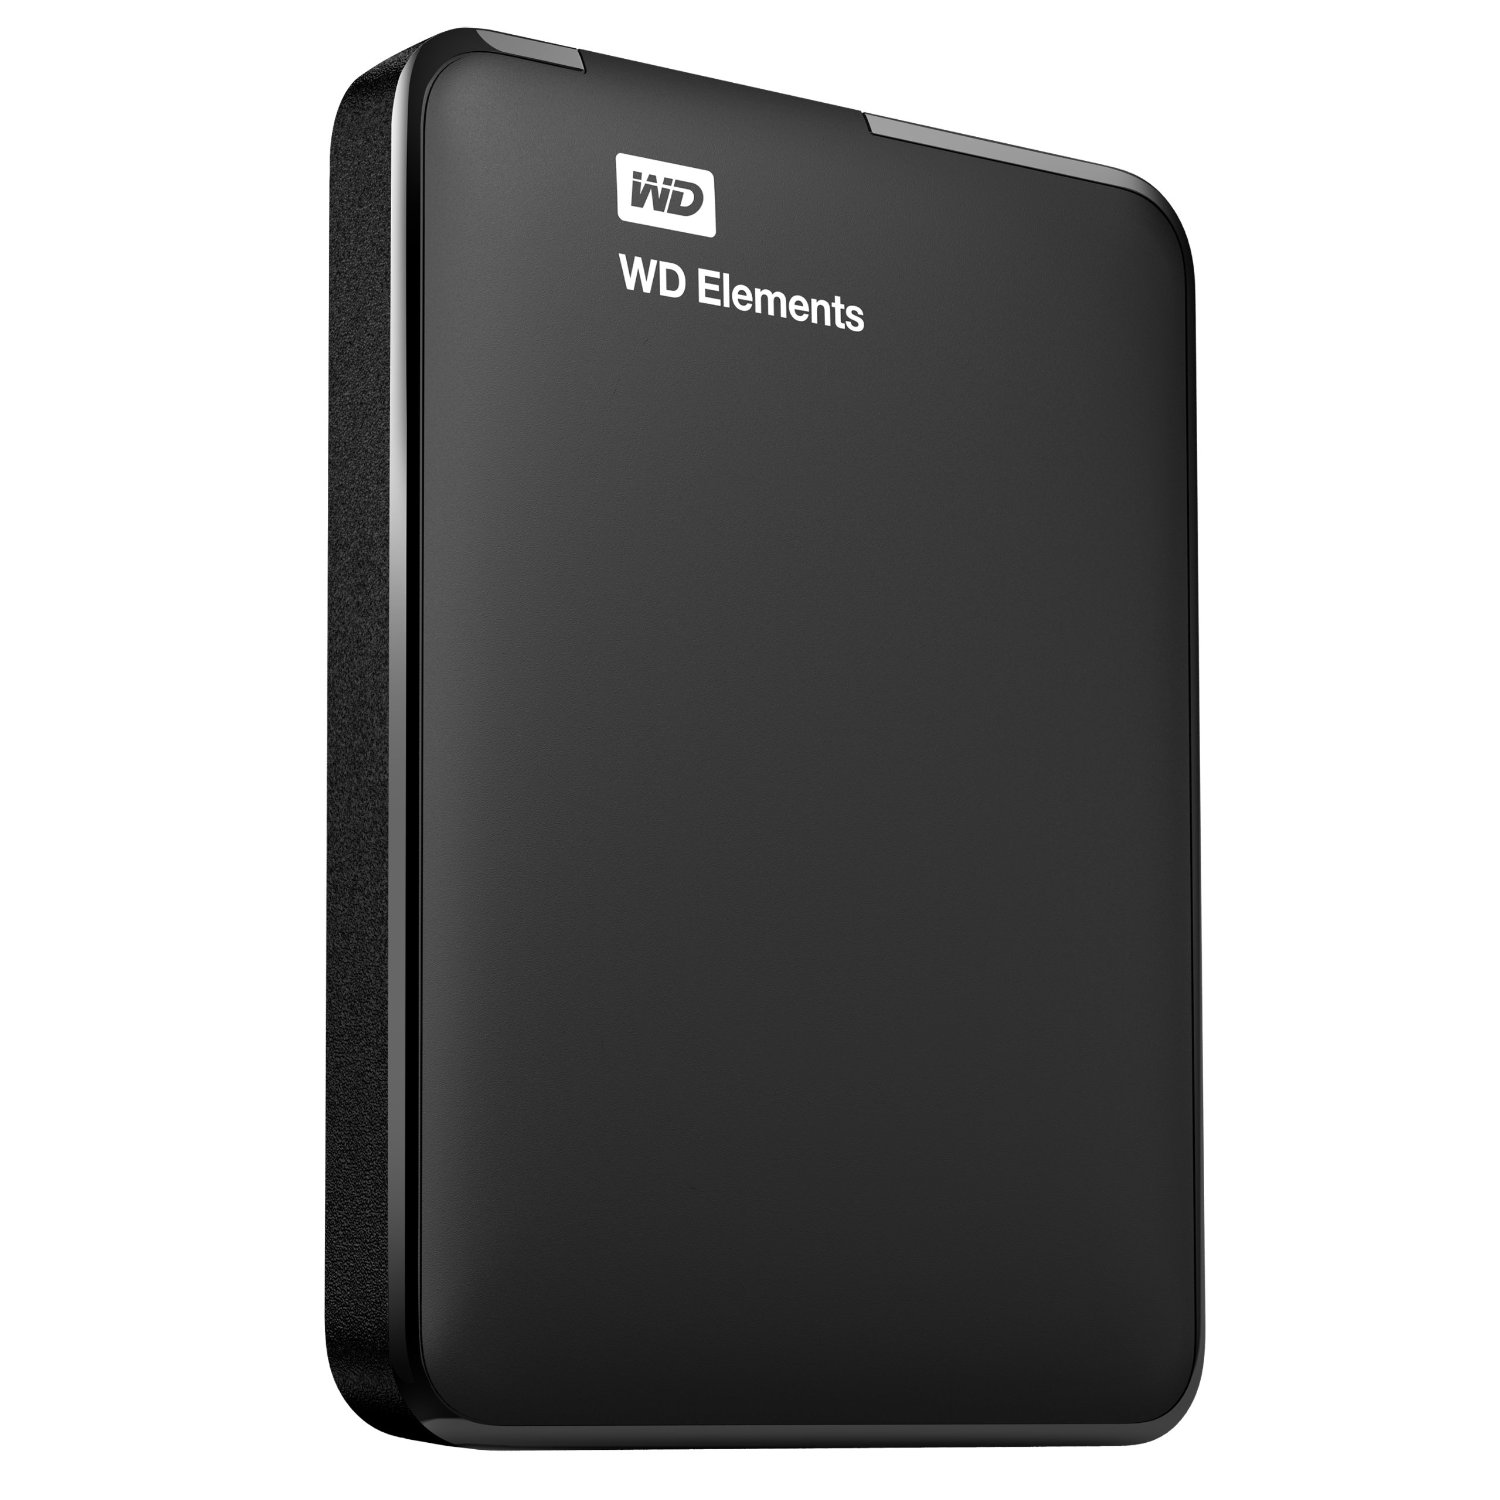 WD Elements Portable 500GB, USB 3.0, Hard Disk ad Alta Capacità, Archiviazione Extra, Backup Locale e su Cloud, Nero